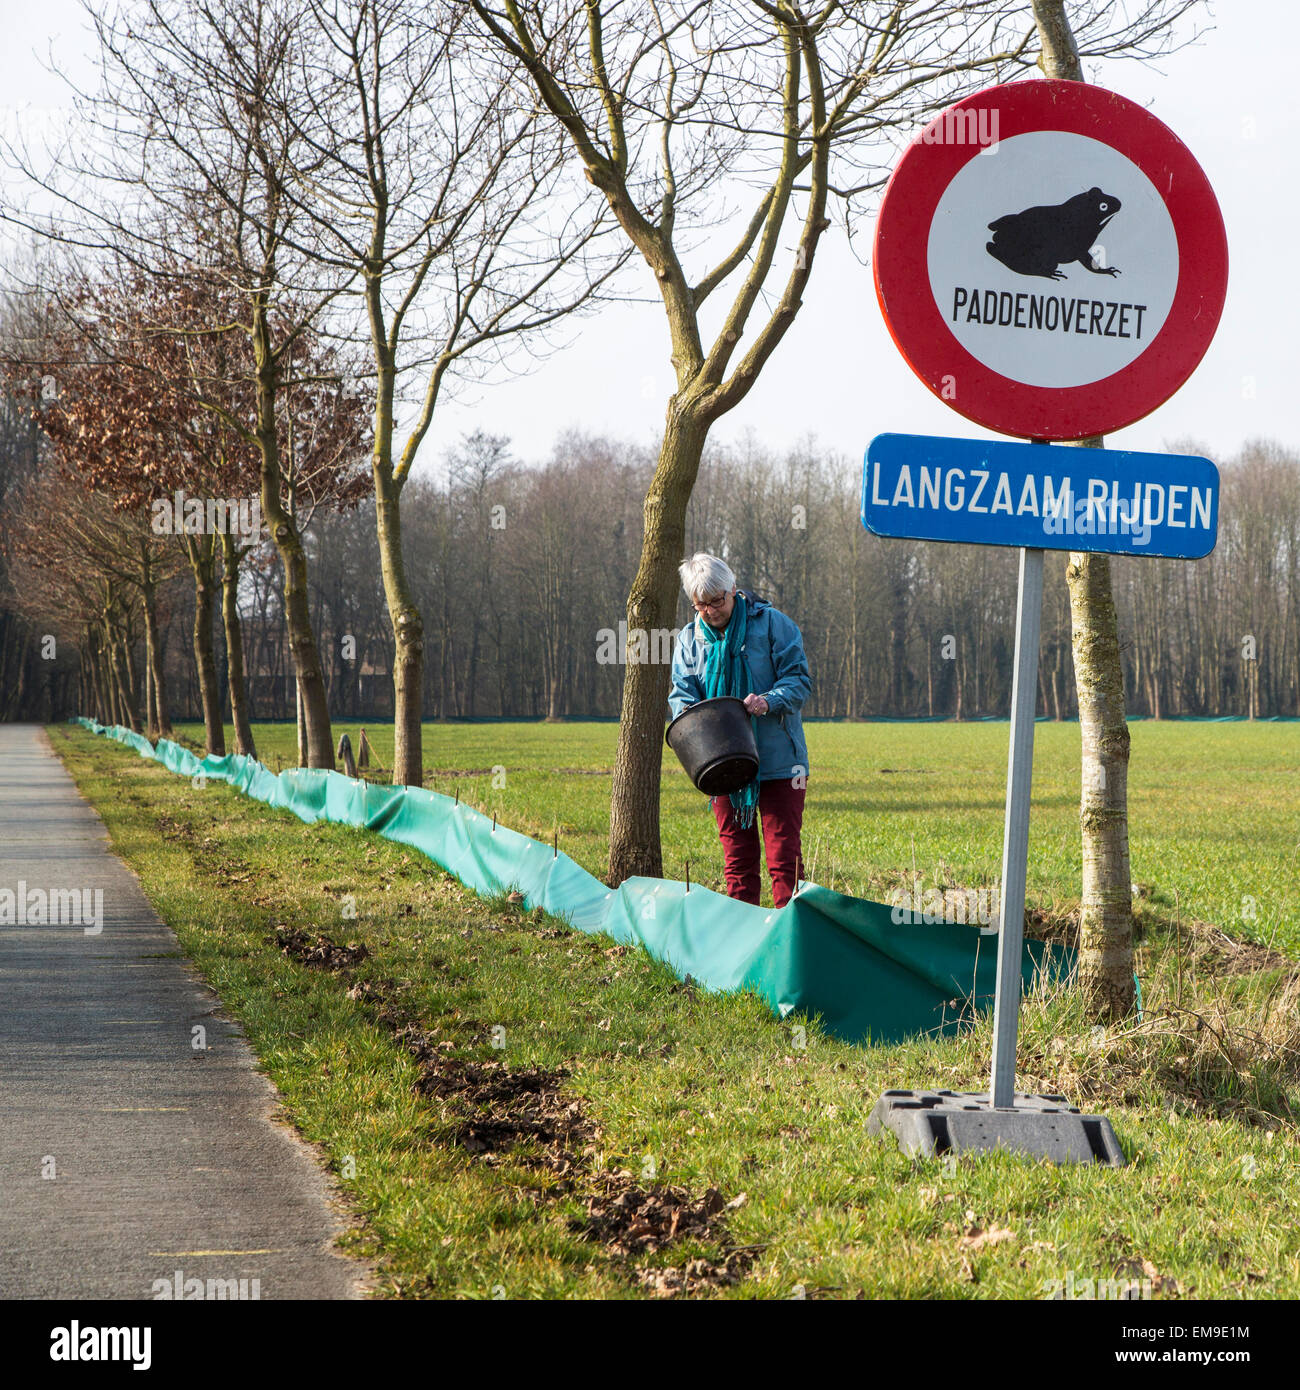 Volunteer checking barrier with buckets for migrating amphibians / toads crossing the road during annual migration - Stock Image